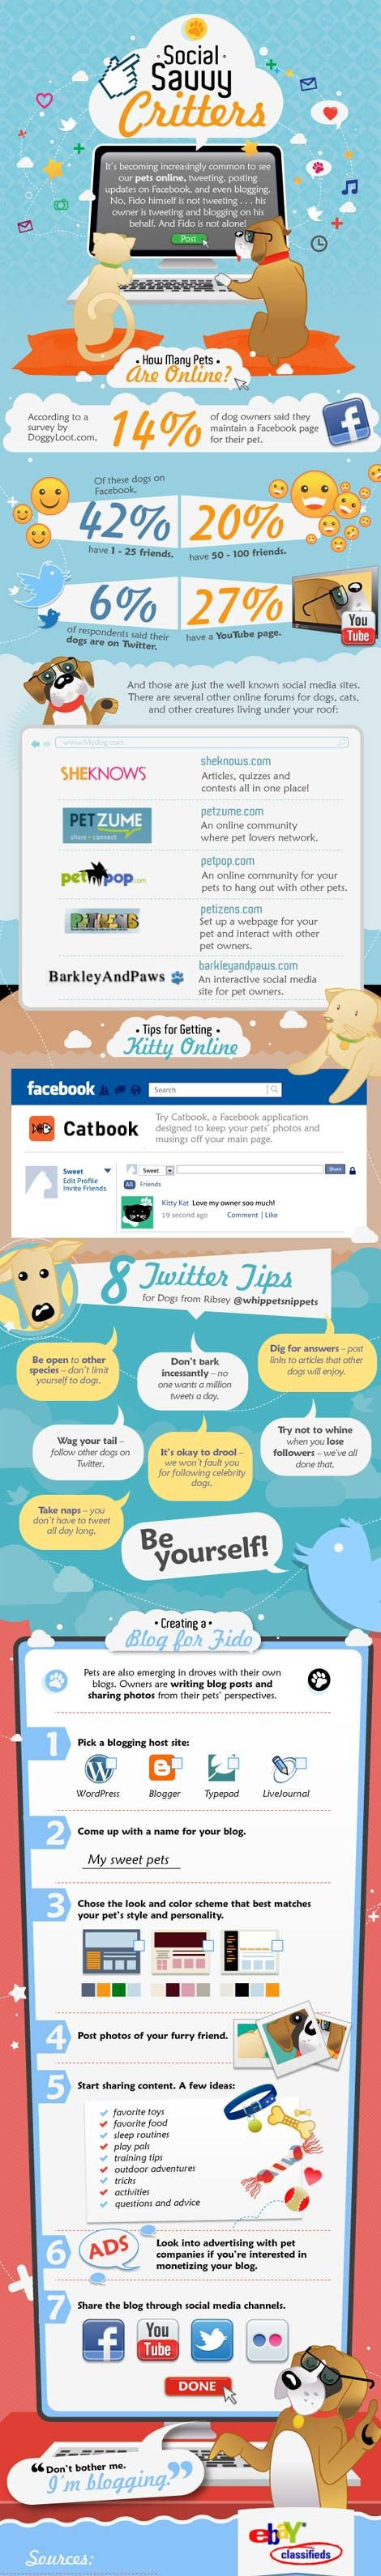 How Many Pets Are Using Social Media? Infographic